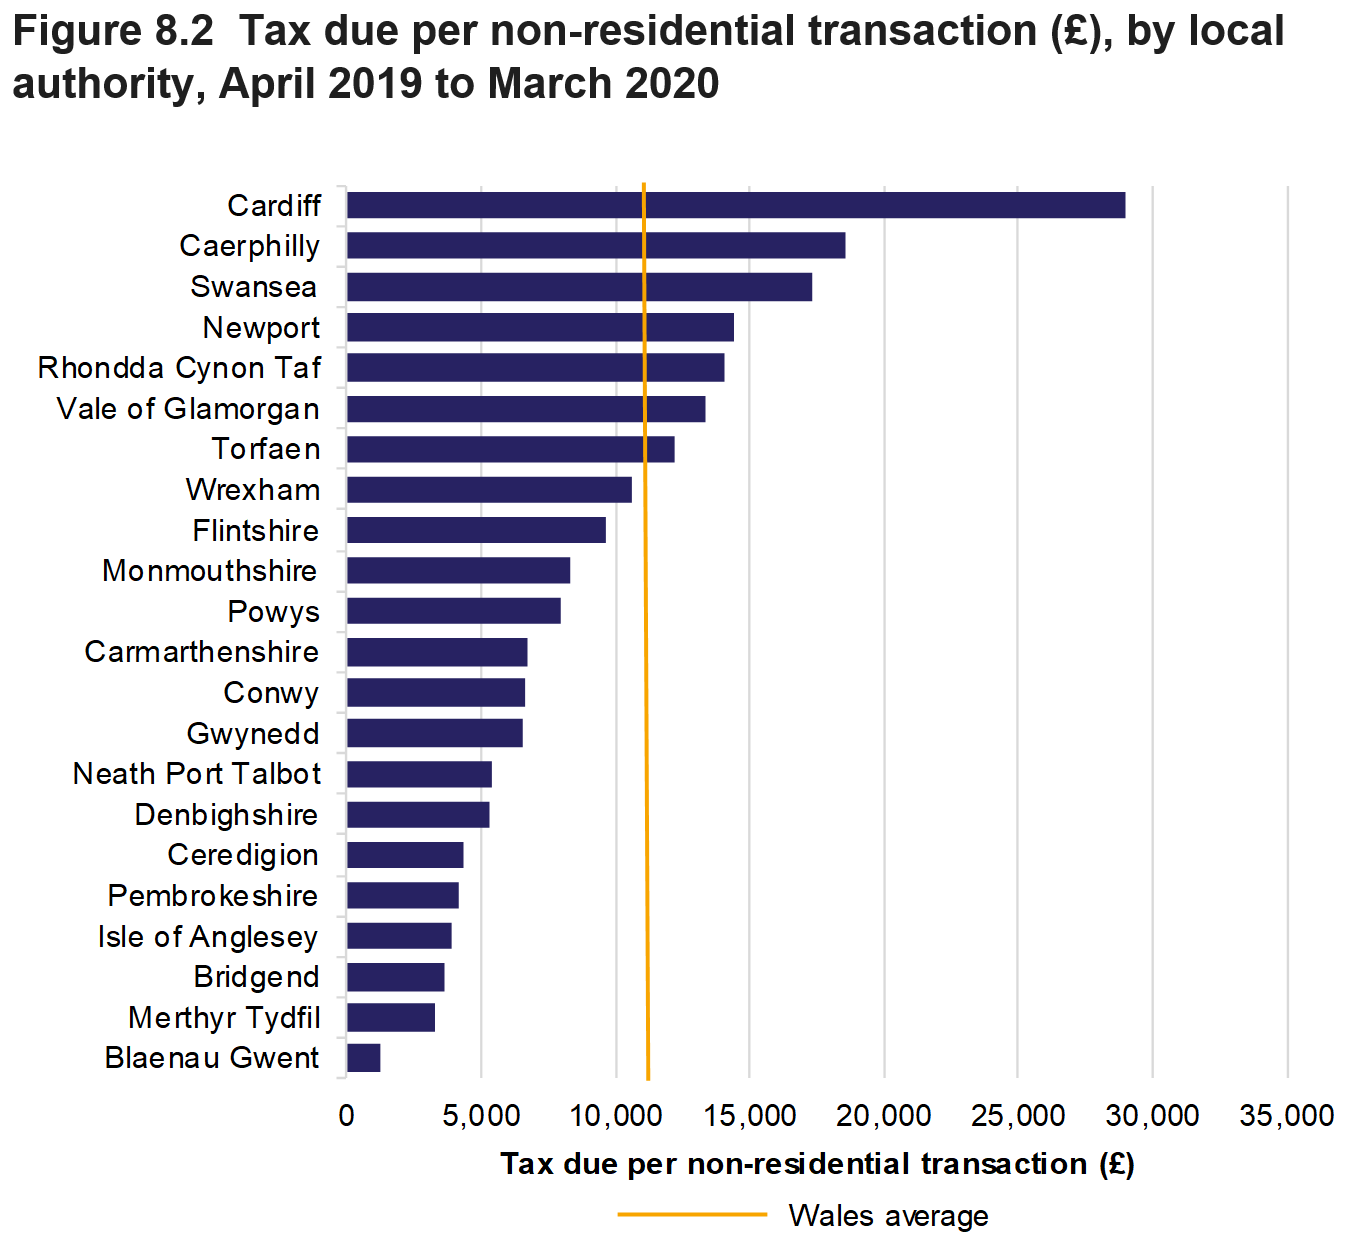 Figure 8.2 shows for non-residential transactions: the amount of tax due per transaction for all local authorities and a Wales average, April 2019 to March 2020.